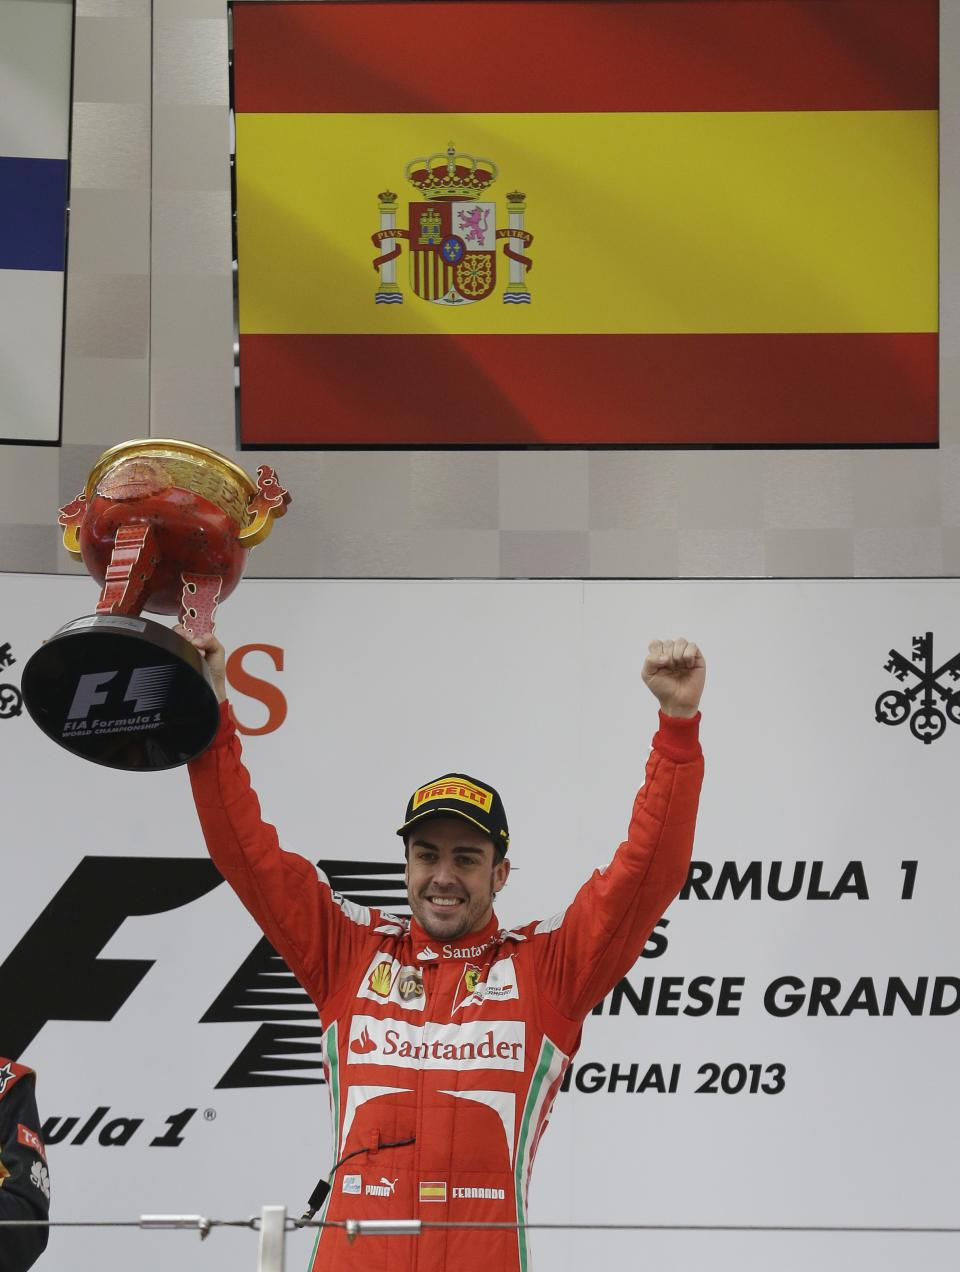 Ferrari driver Fernando Alonso of Spain holds his trophy aloft as he celebrates his win at the Chinese Formula One Grand Prix in Shanghai, China, Sunday, April 14, 2013. (AP Photo/Ng Han Guan)